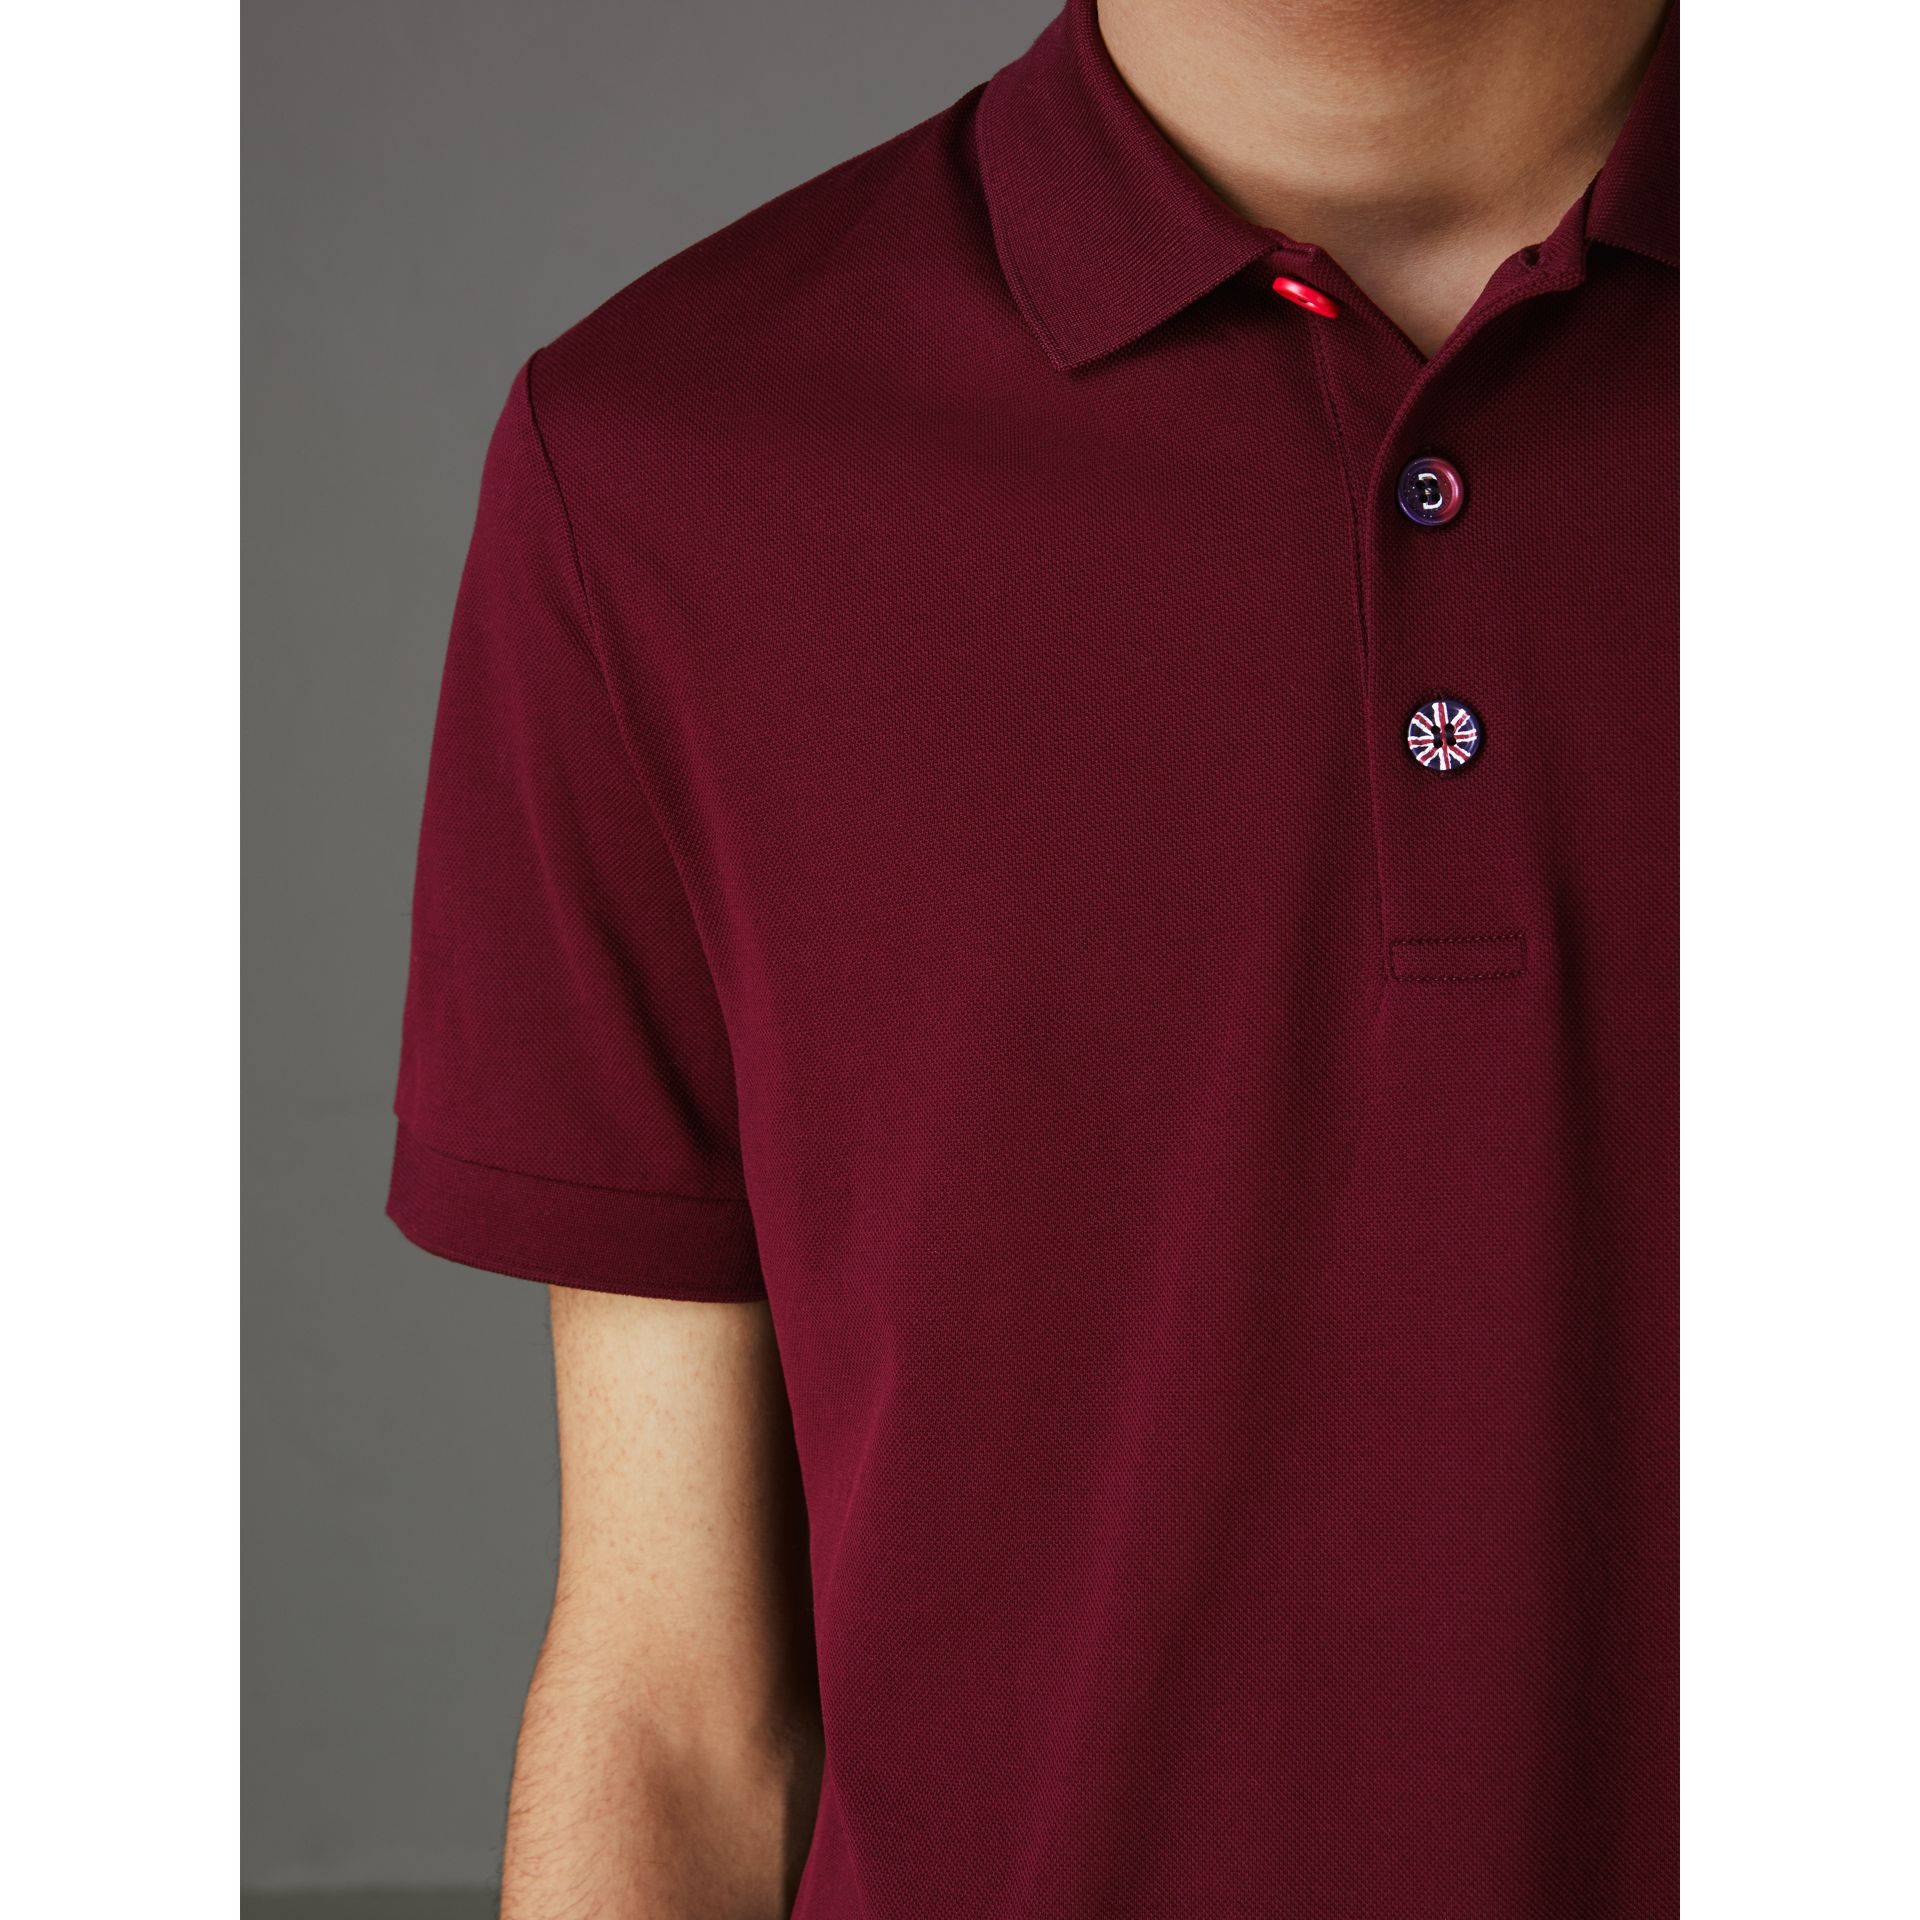 Painted Button Cotton Piqué Polo Shirt in Burgundy Red - Men | Burberry Australia - gallery image 1